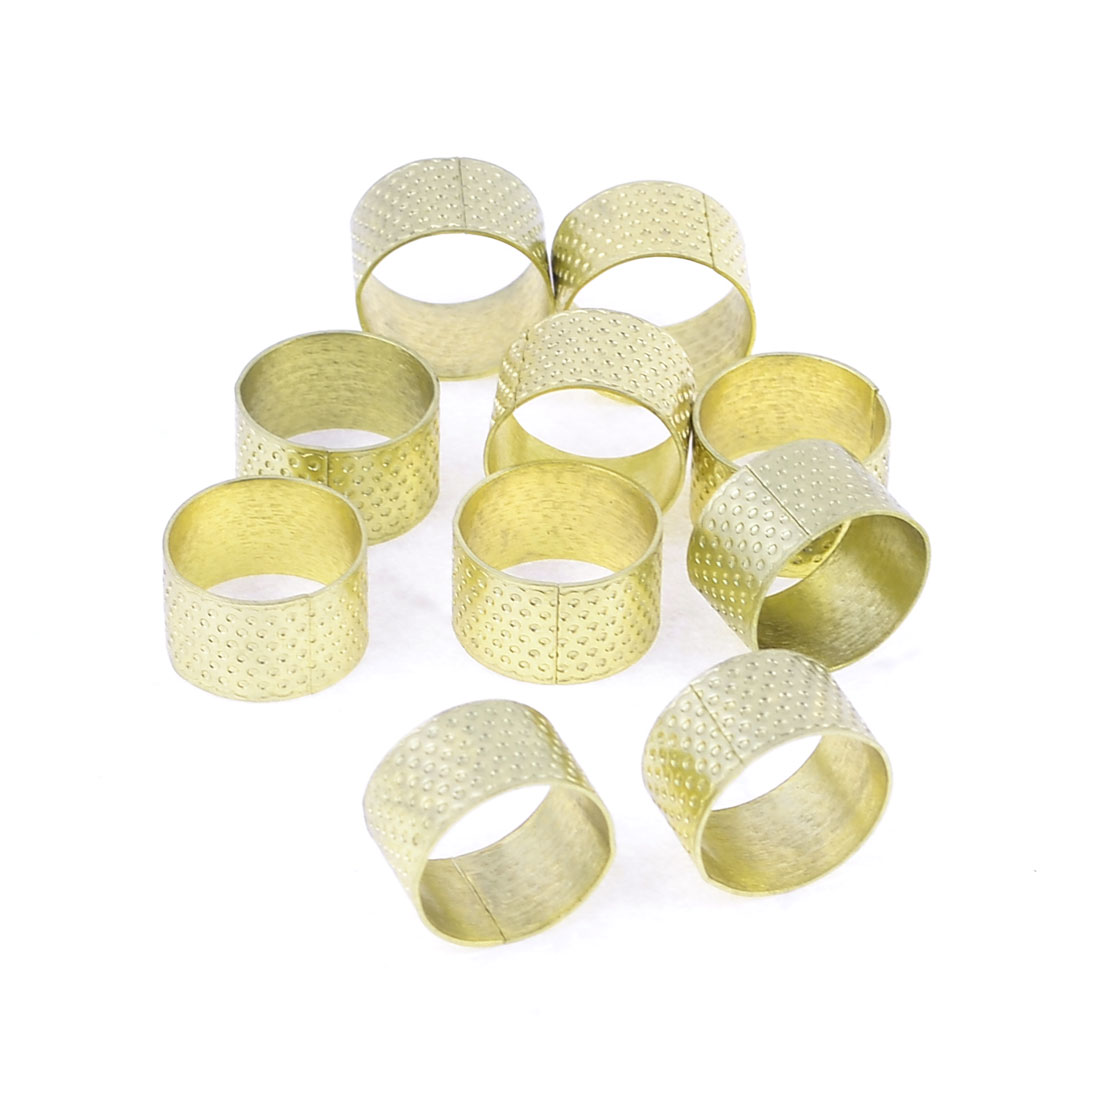 Tailoring Sewing Reeded Needle Hole Thimble Ring Gold Tone 10 Pieces